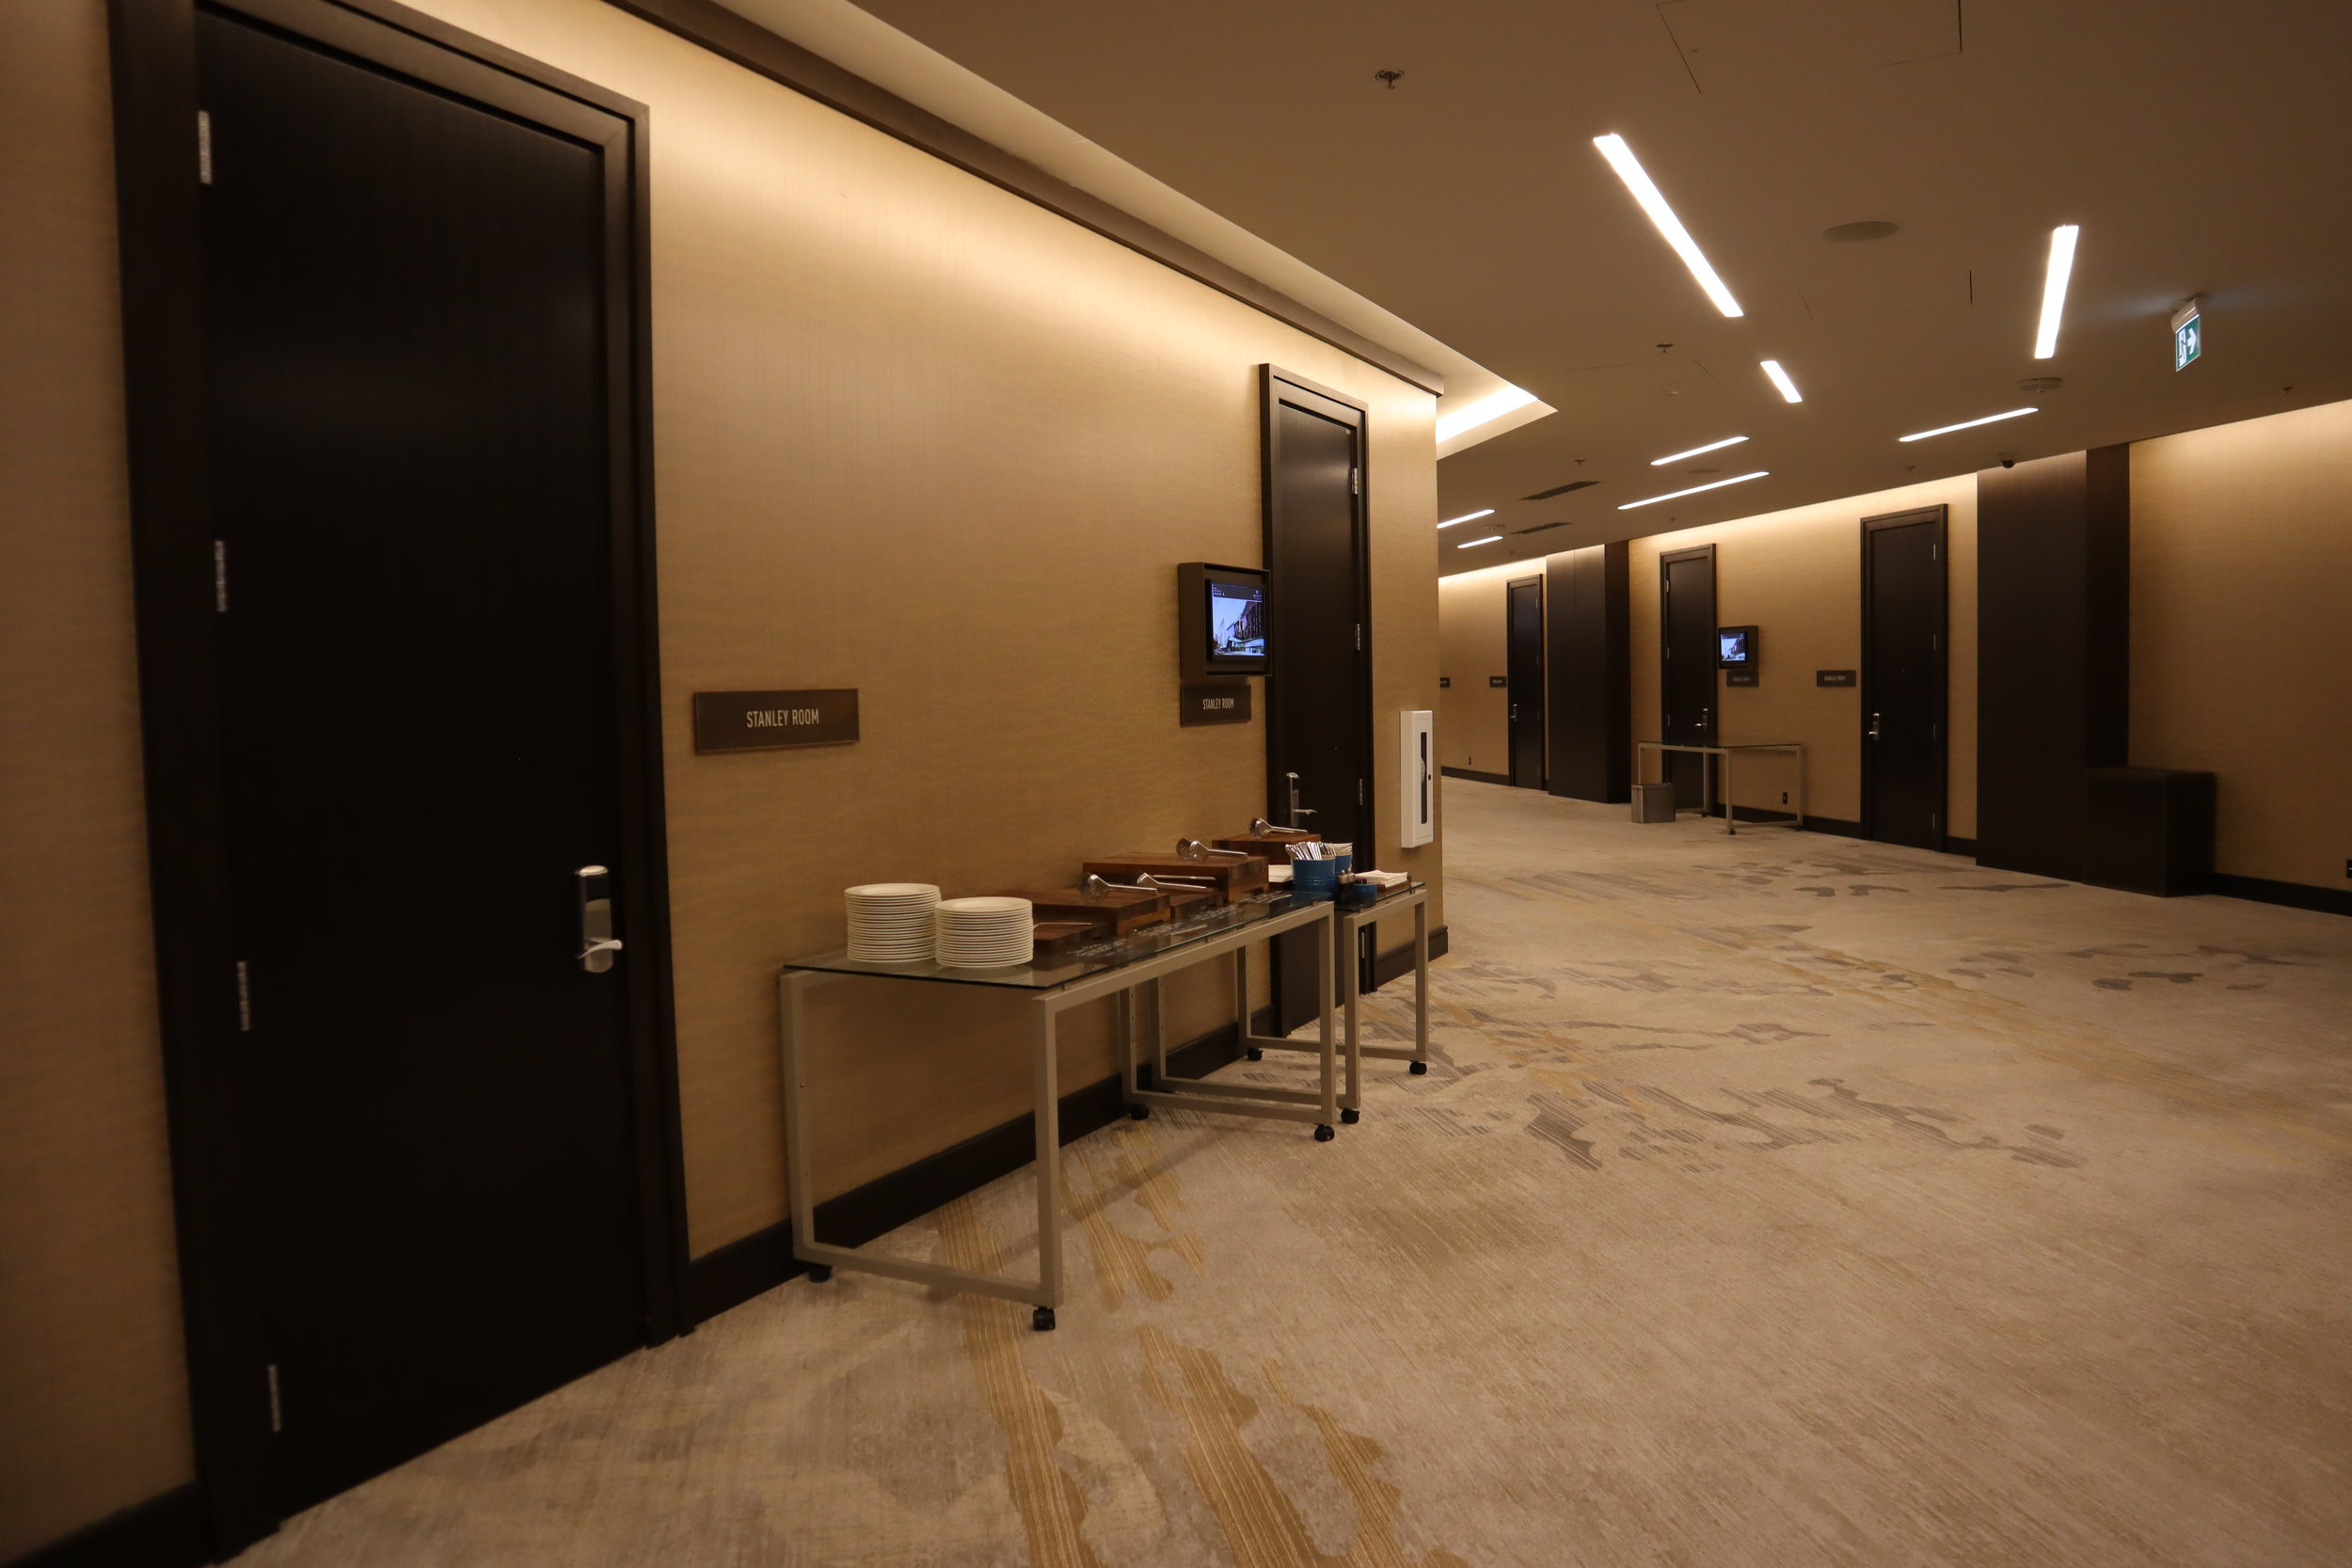 JW Marriott Parq Vancouver – Event spaces